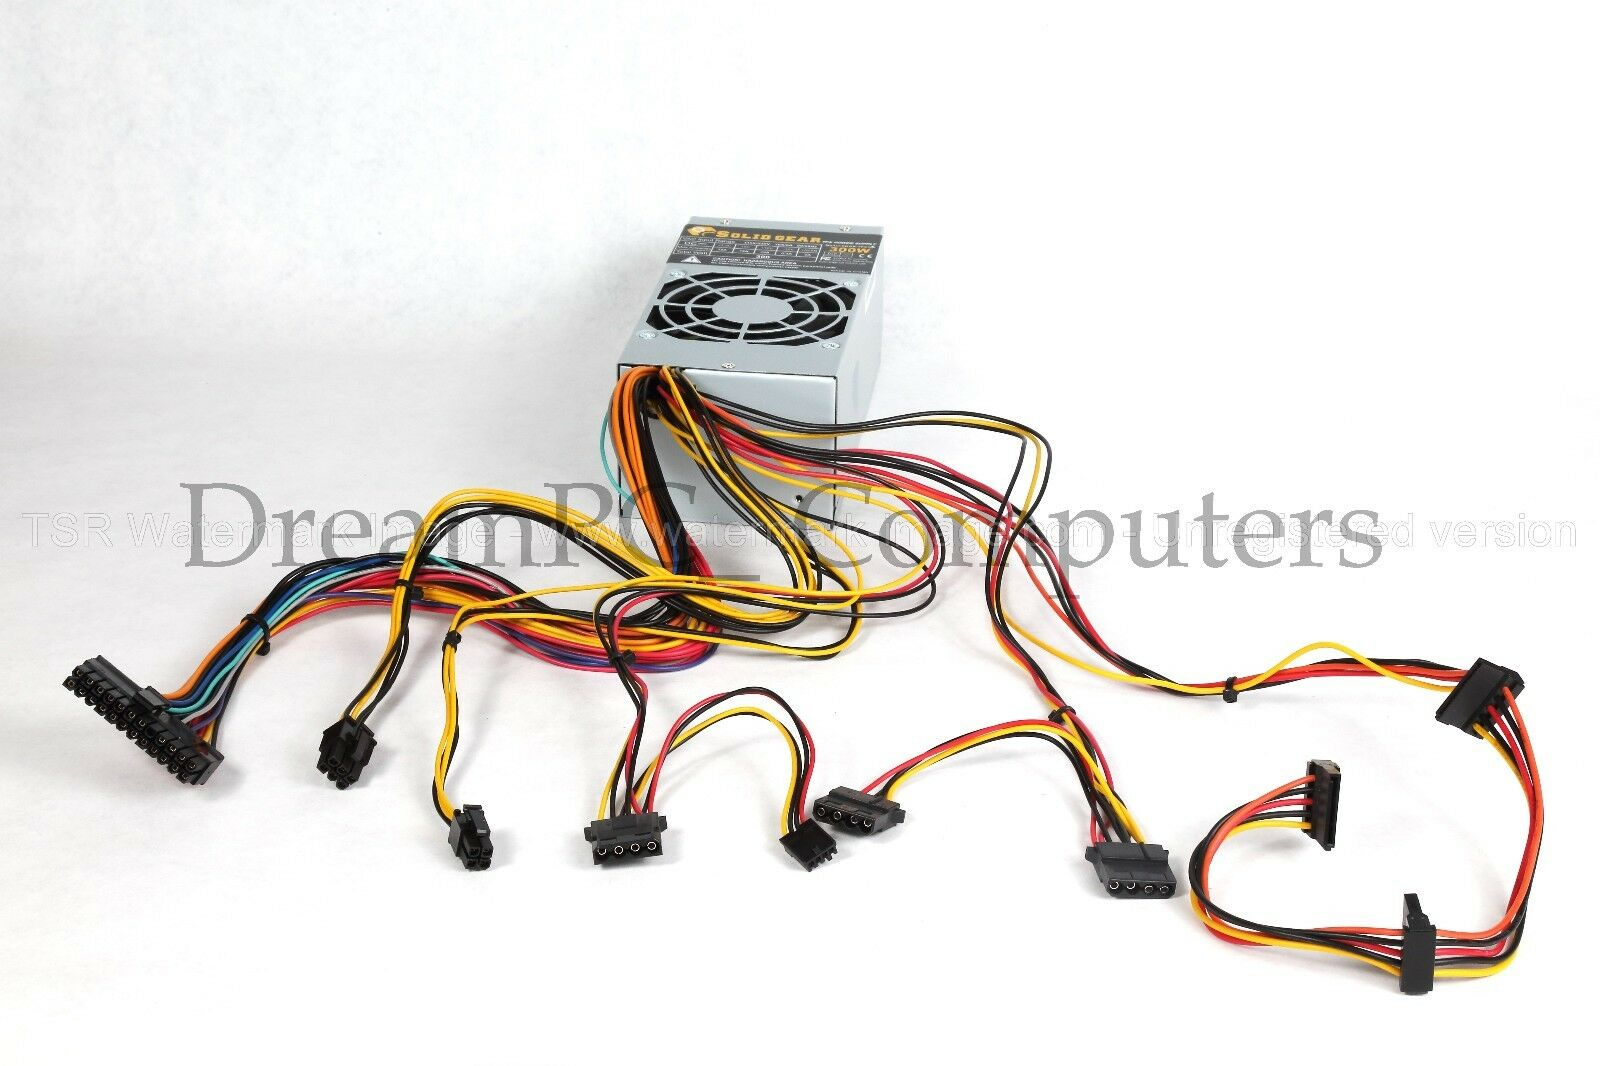 New PC Power Supply Upgrade for HP Pavilion s5117c Slimline SFF Computer